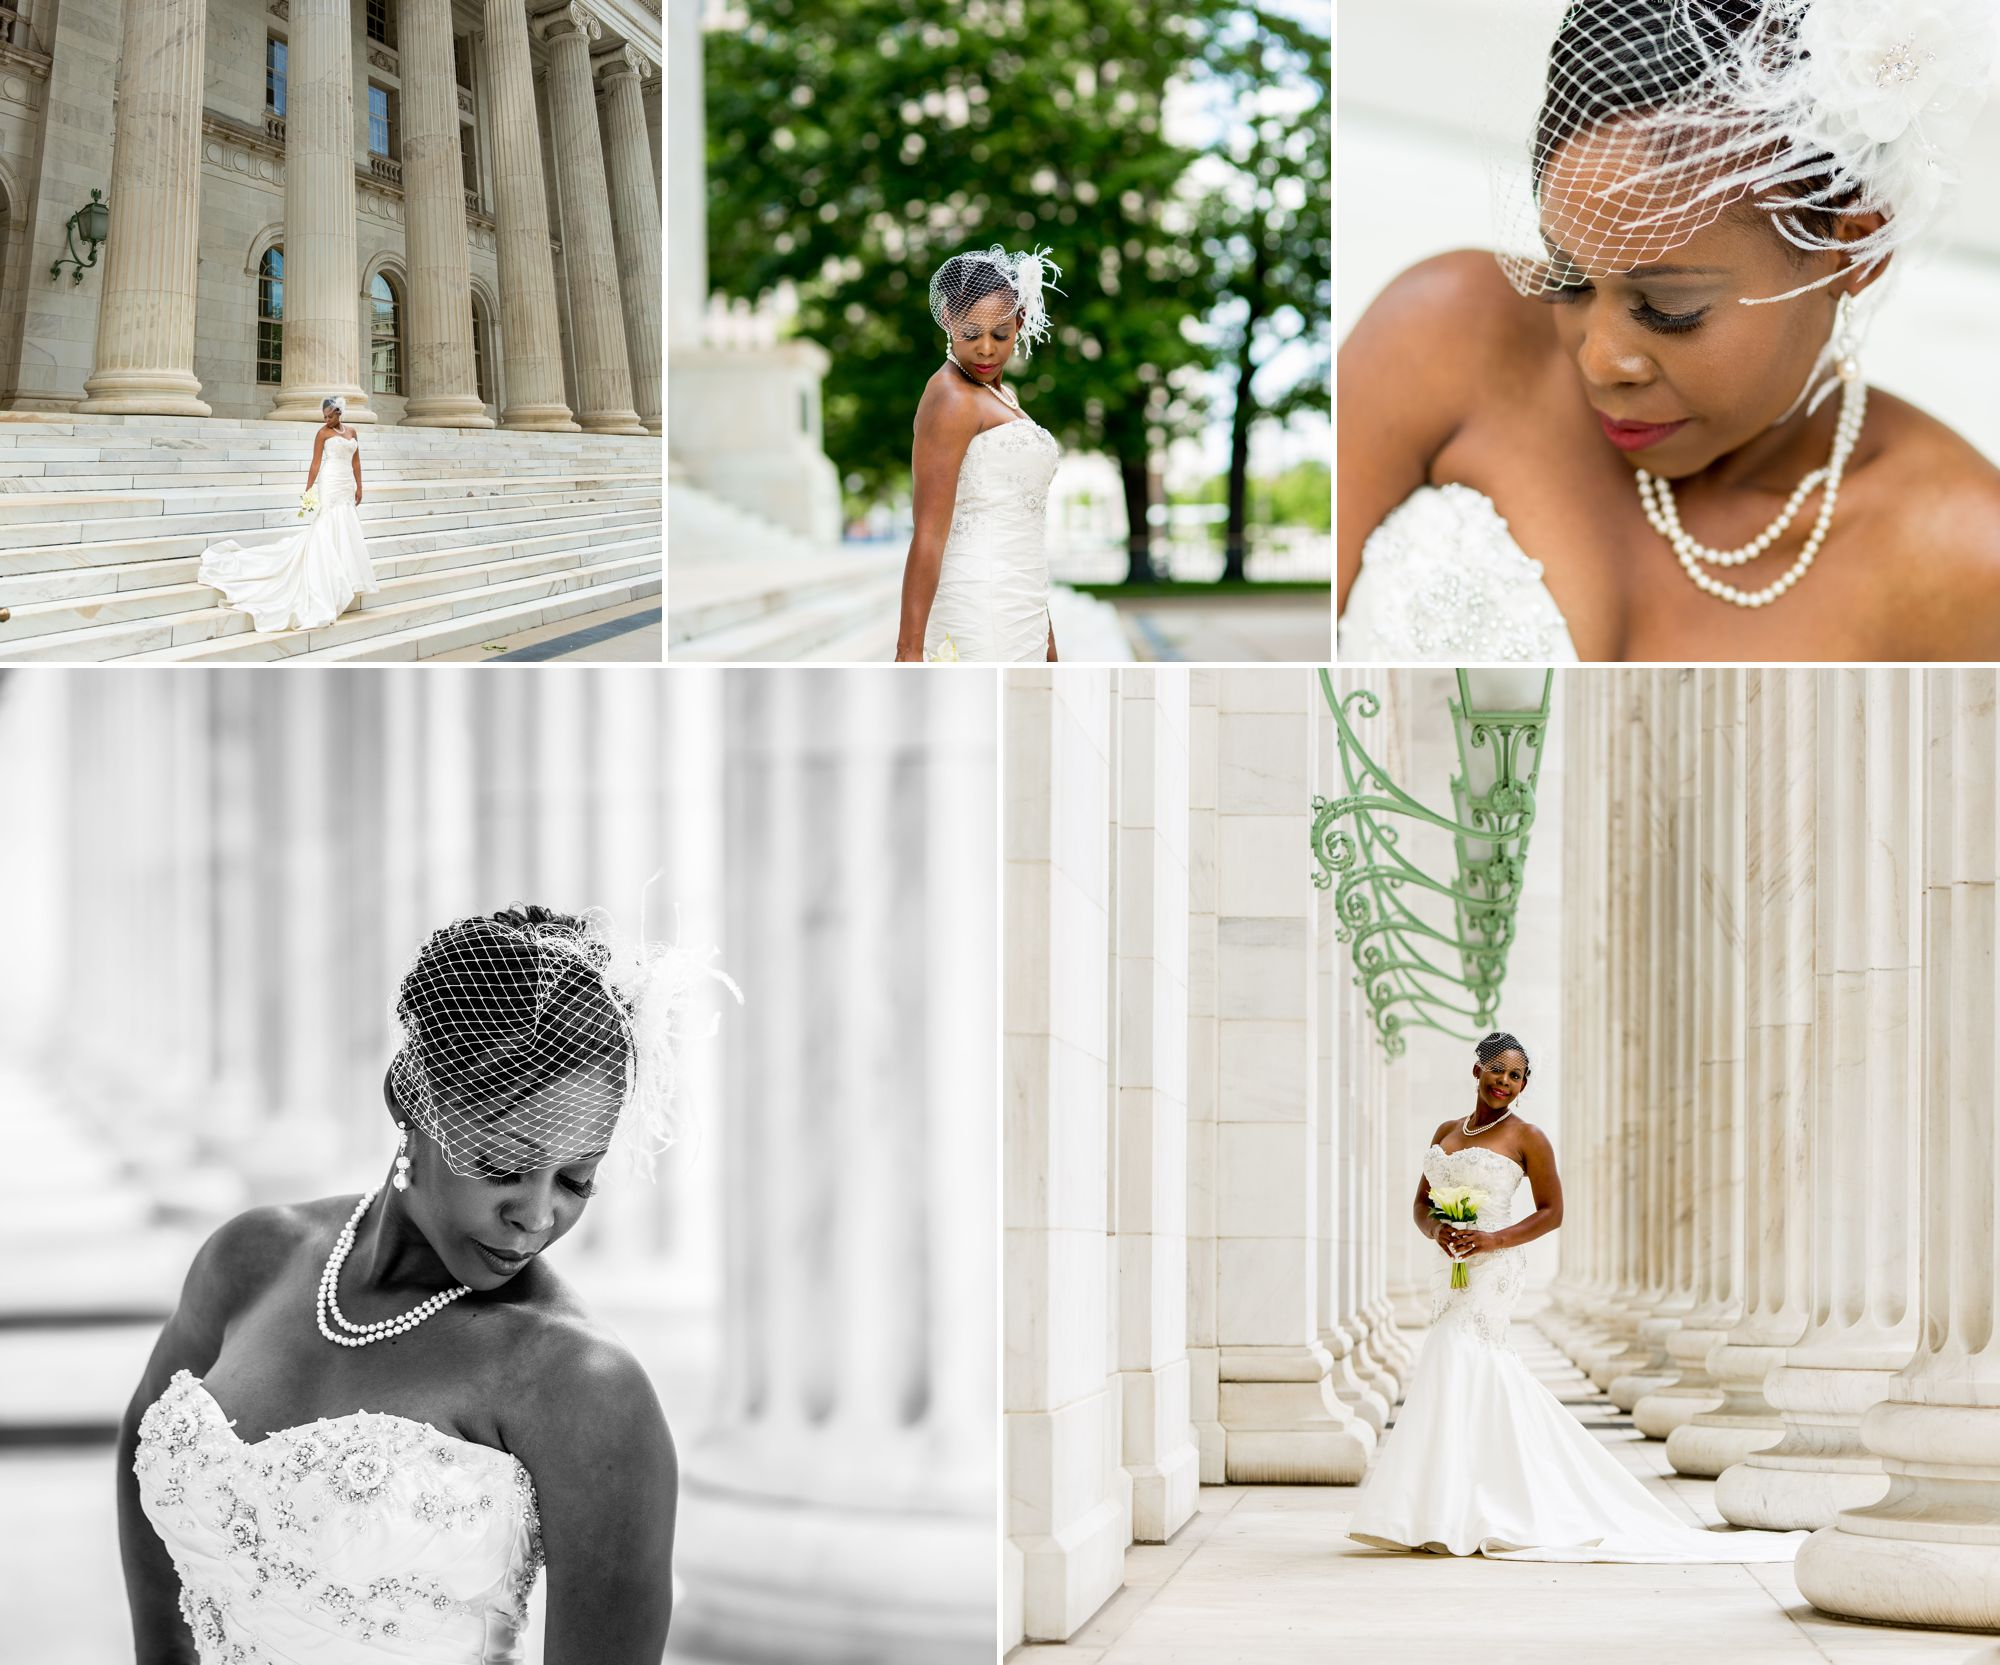 The Denver Courthouse was perfect for Joi's vision!  Between her beautiful skin tone, the dress, flowers, building and light fixtures, you could not have asked for a better place!